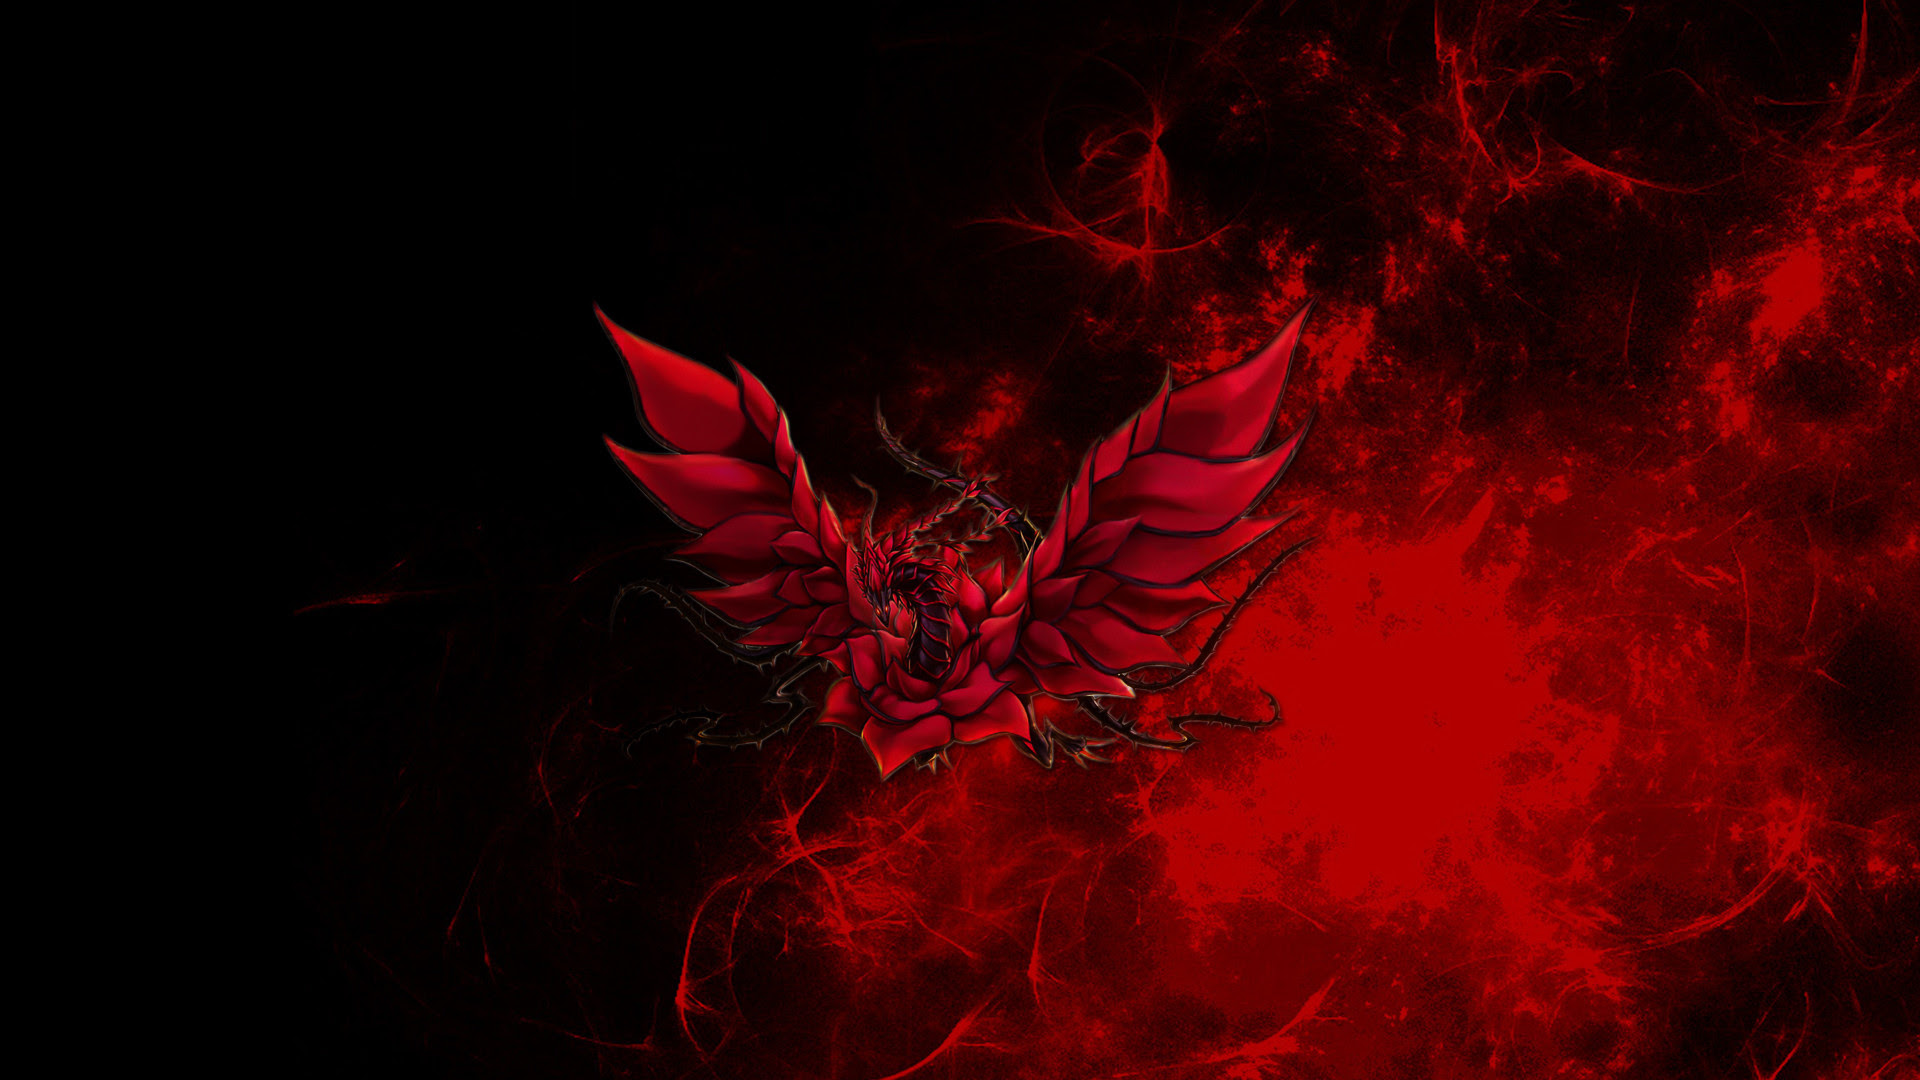 Red And Black Dragon Wallpaper 64 Images